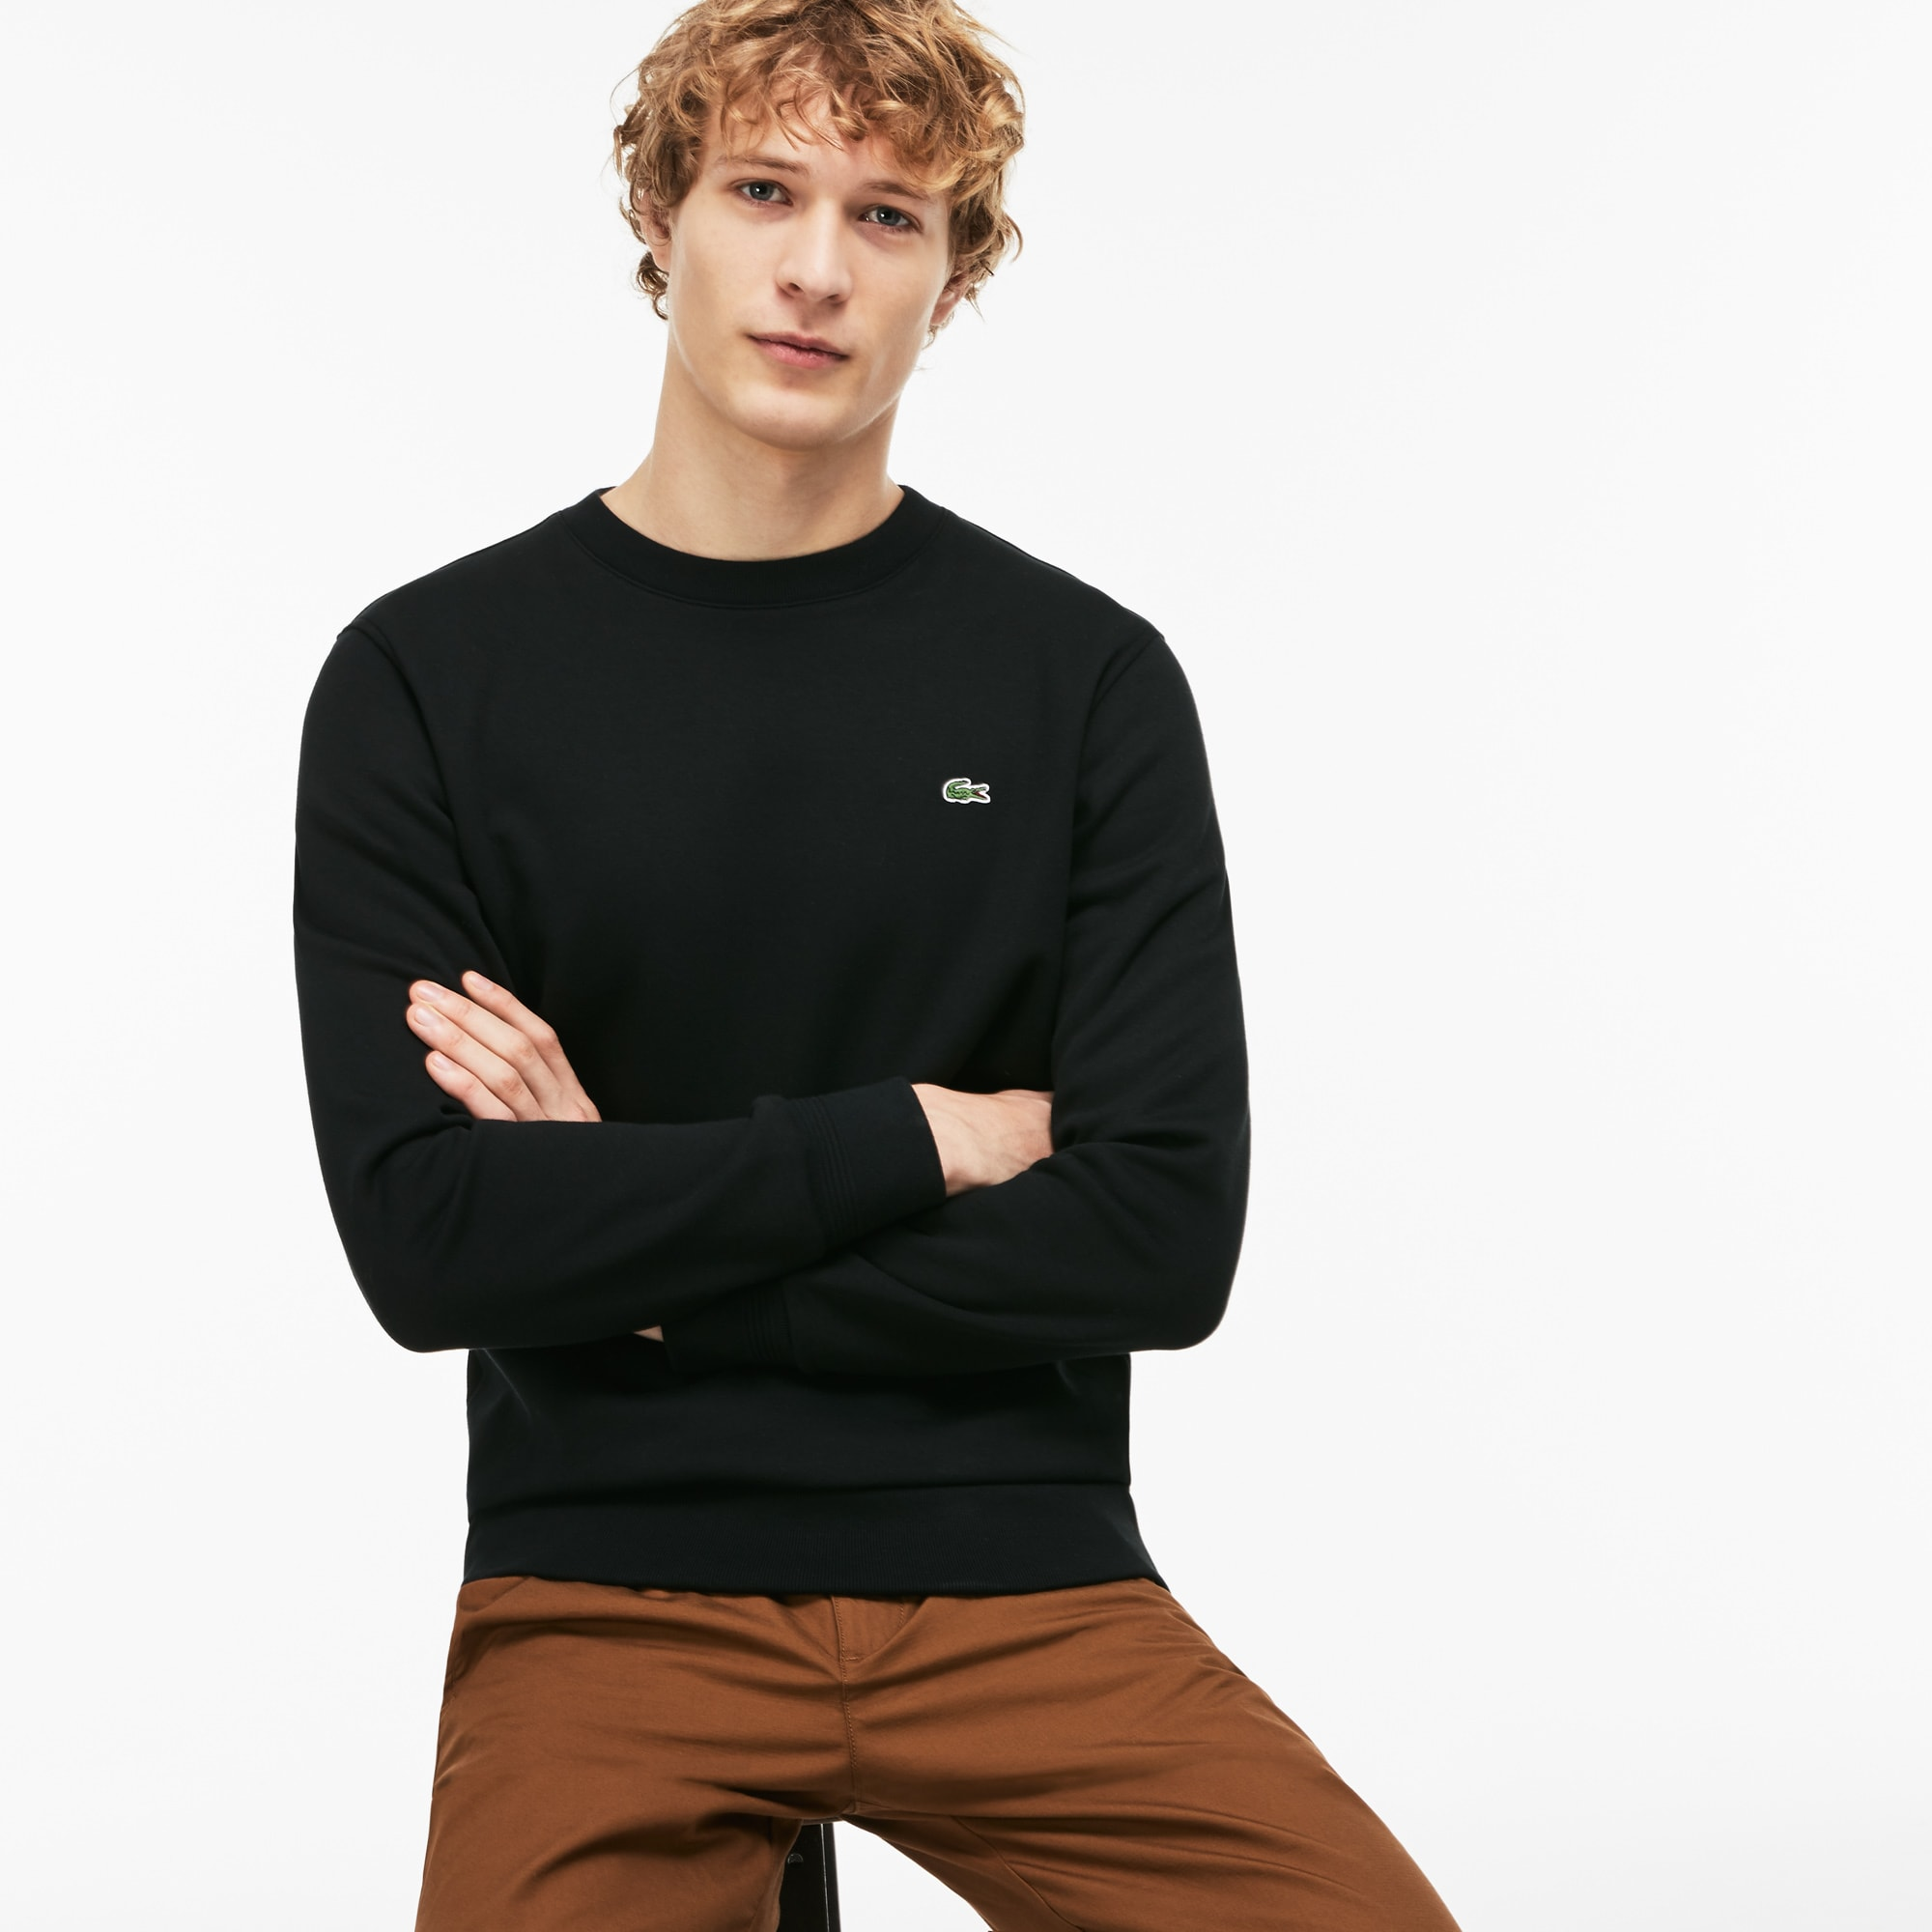 Men's Crew Neck Contrast Sweatshirt